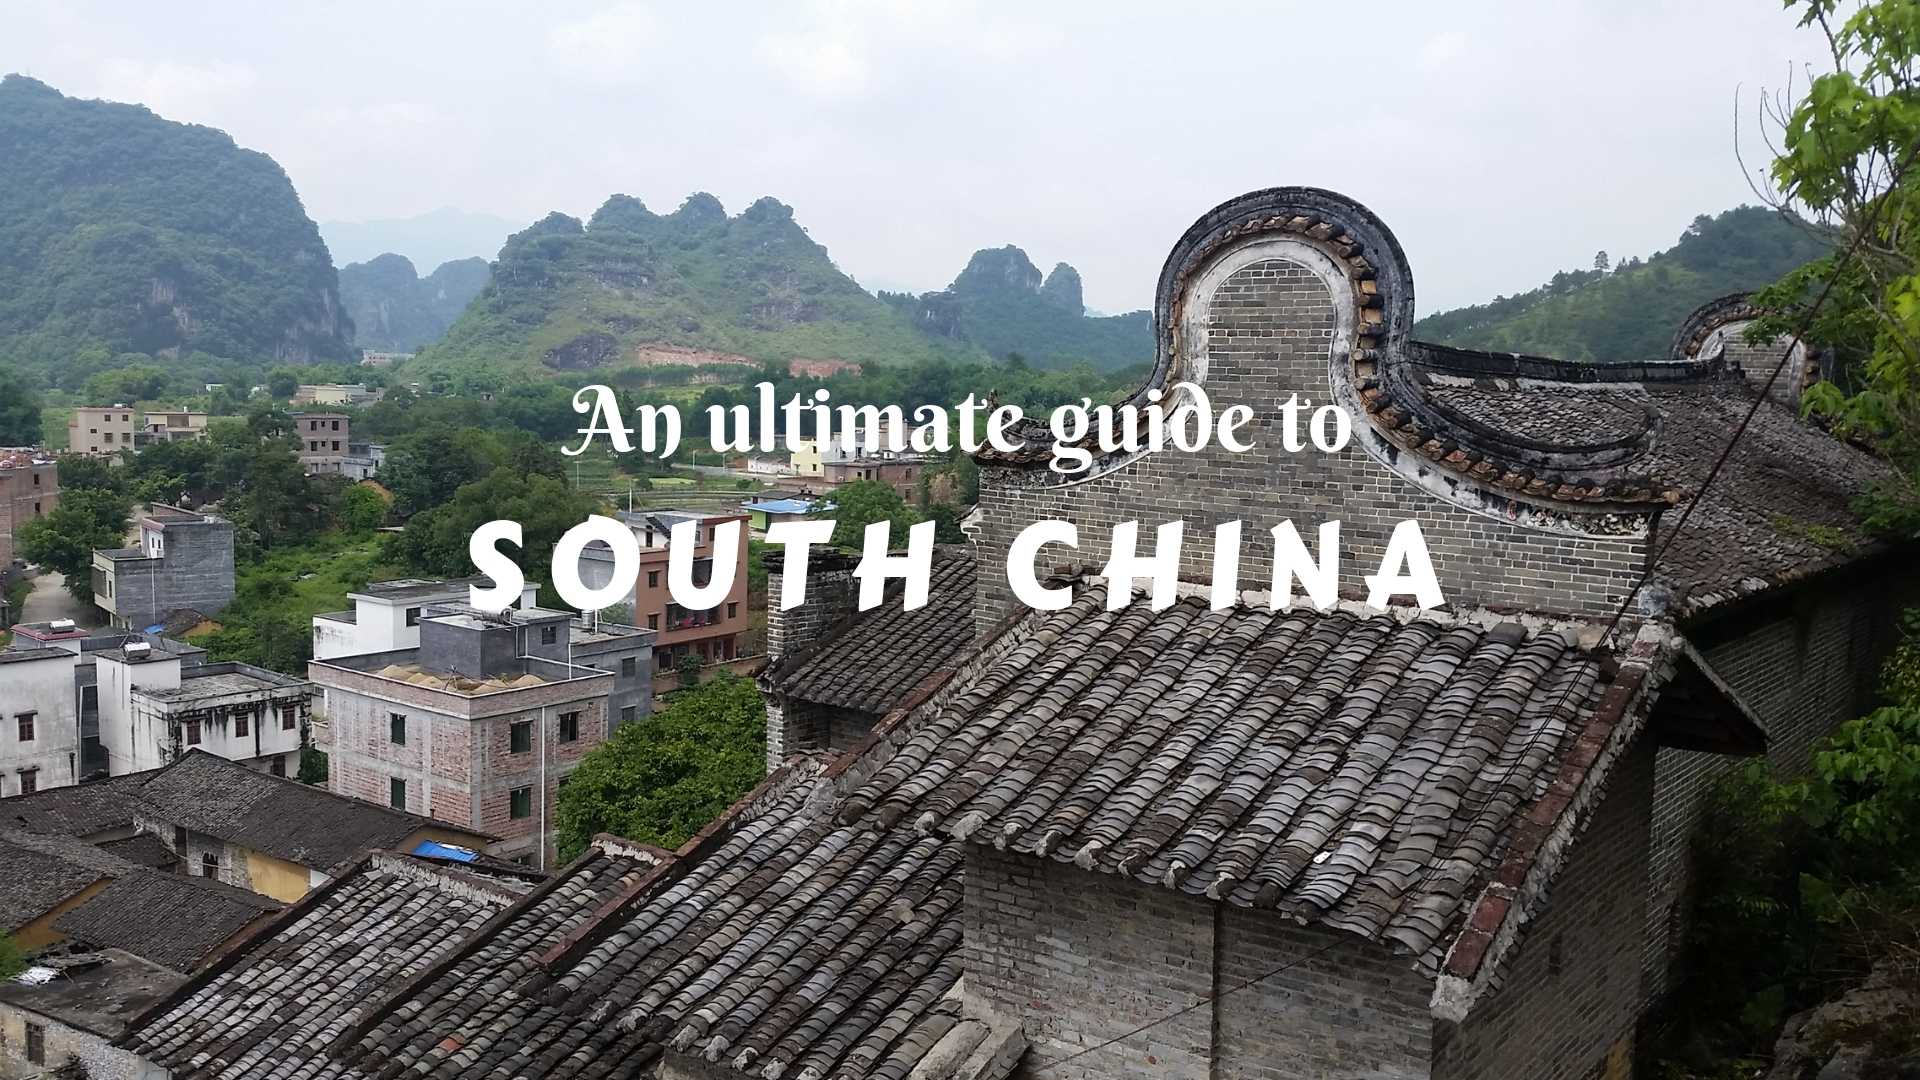 AN ULTIMATE GUIDE TO SOUTH CHINA